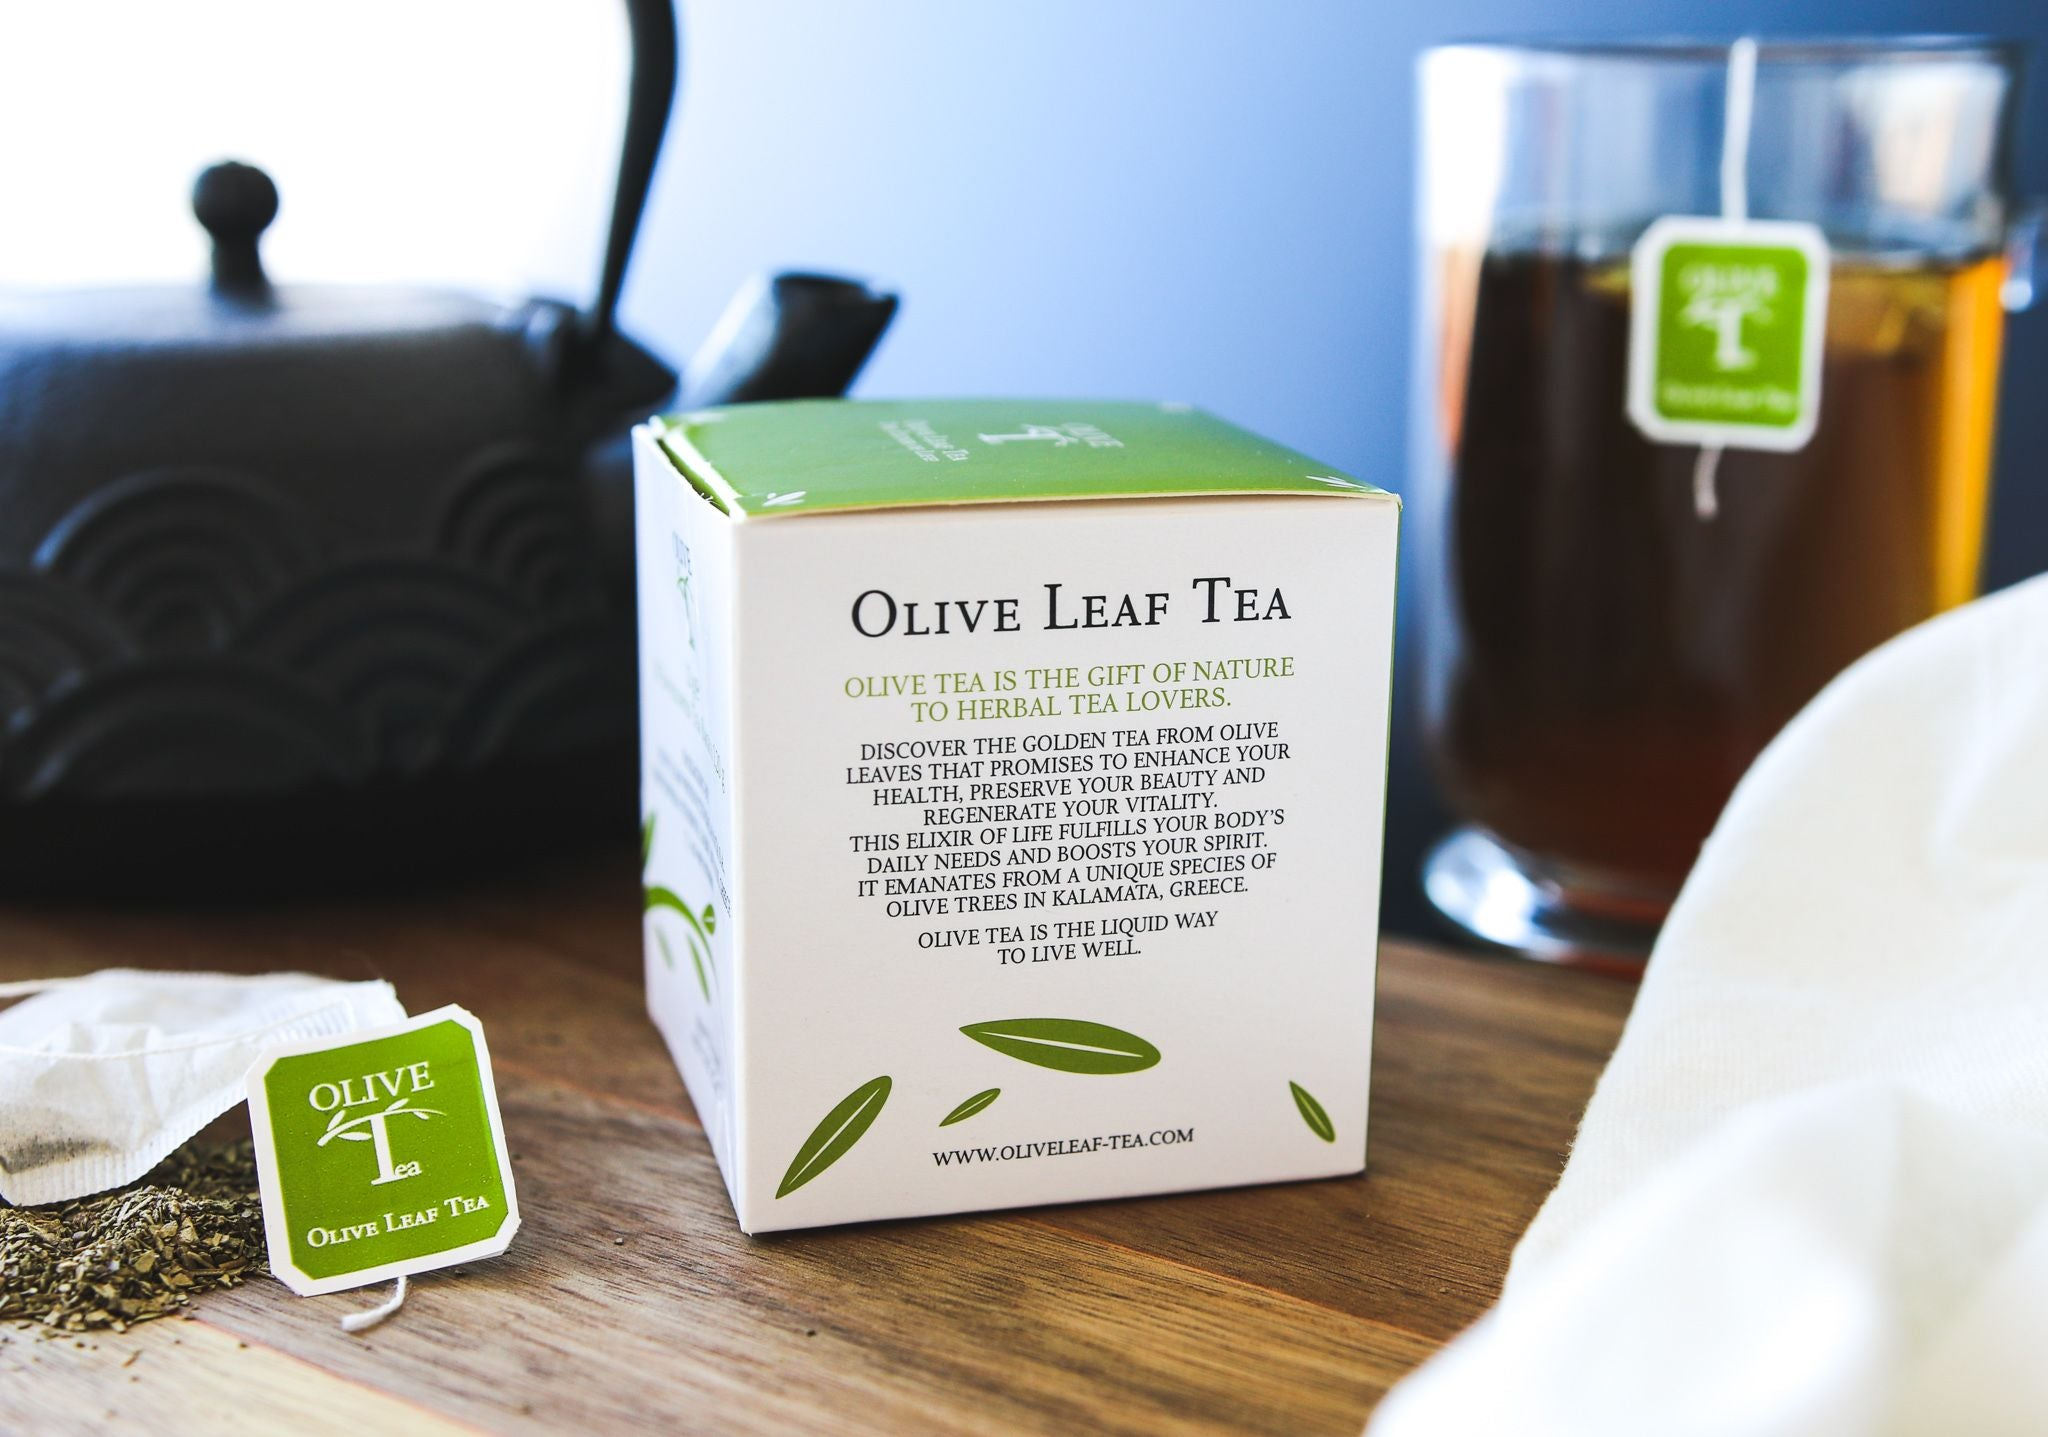 Olive Leaf Tea - The Elixir of Life